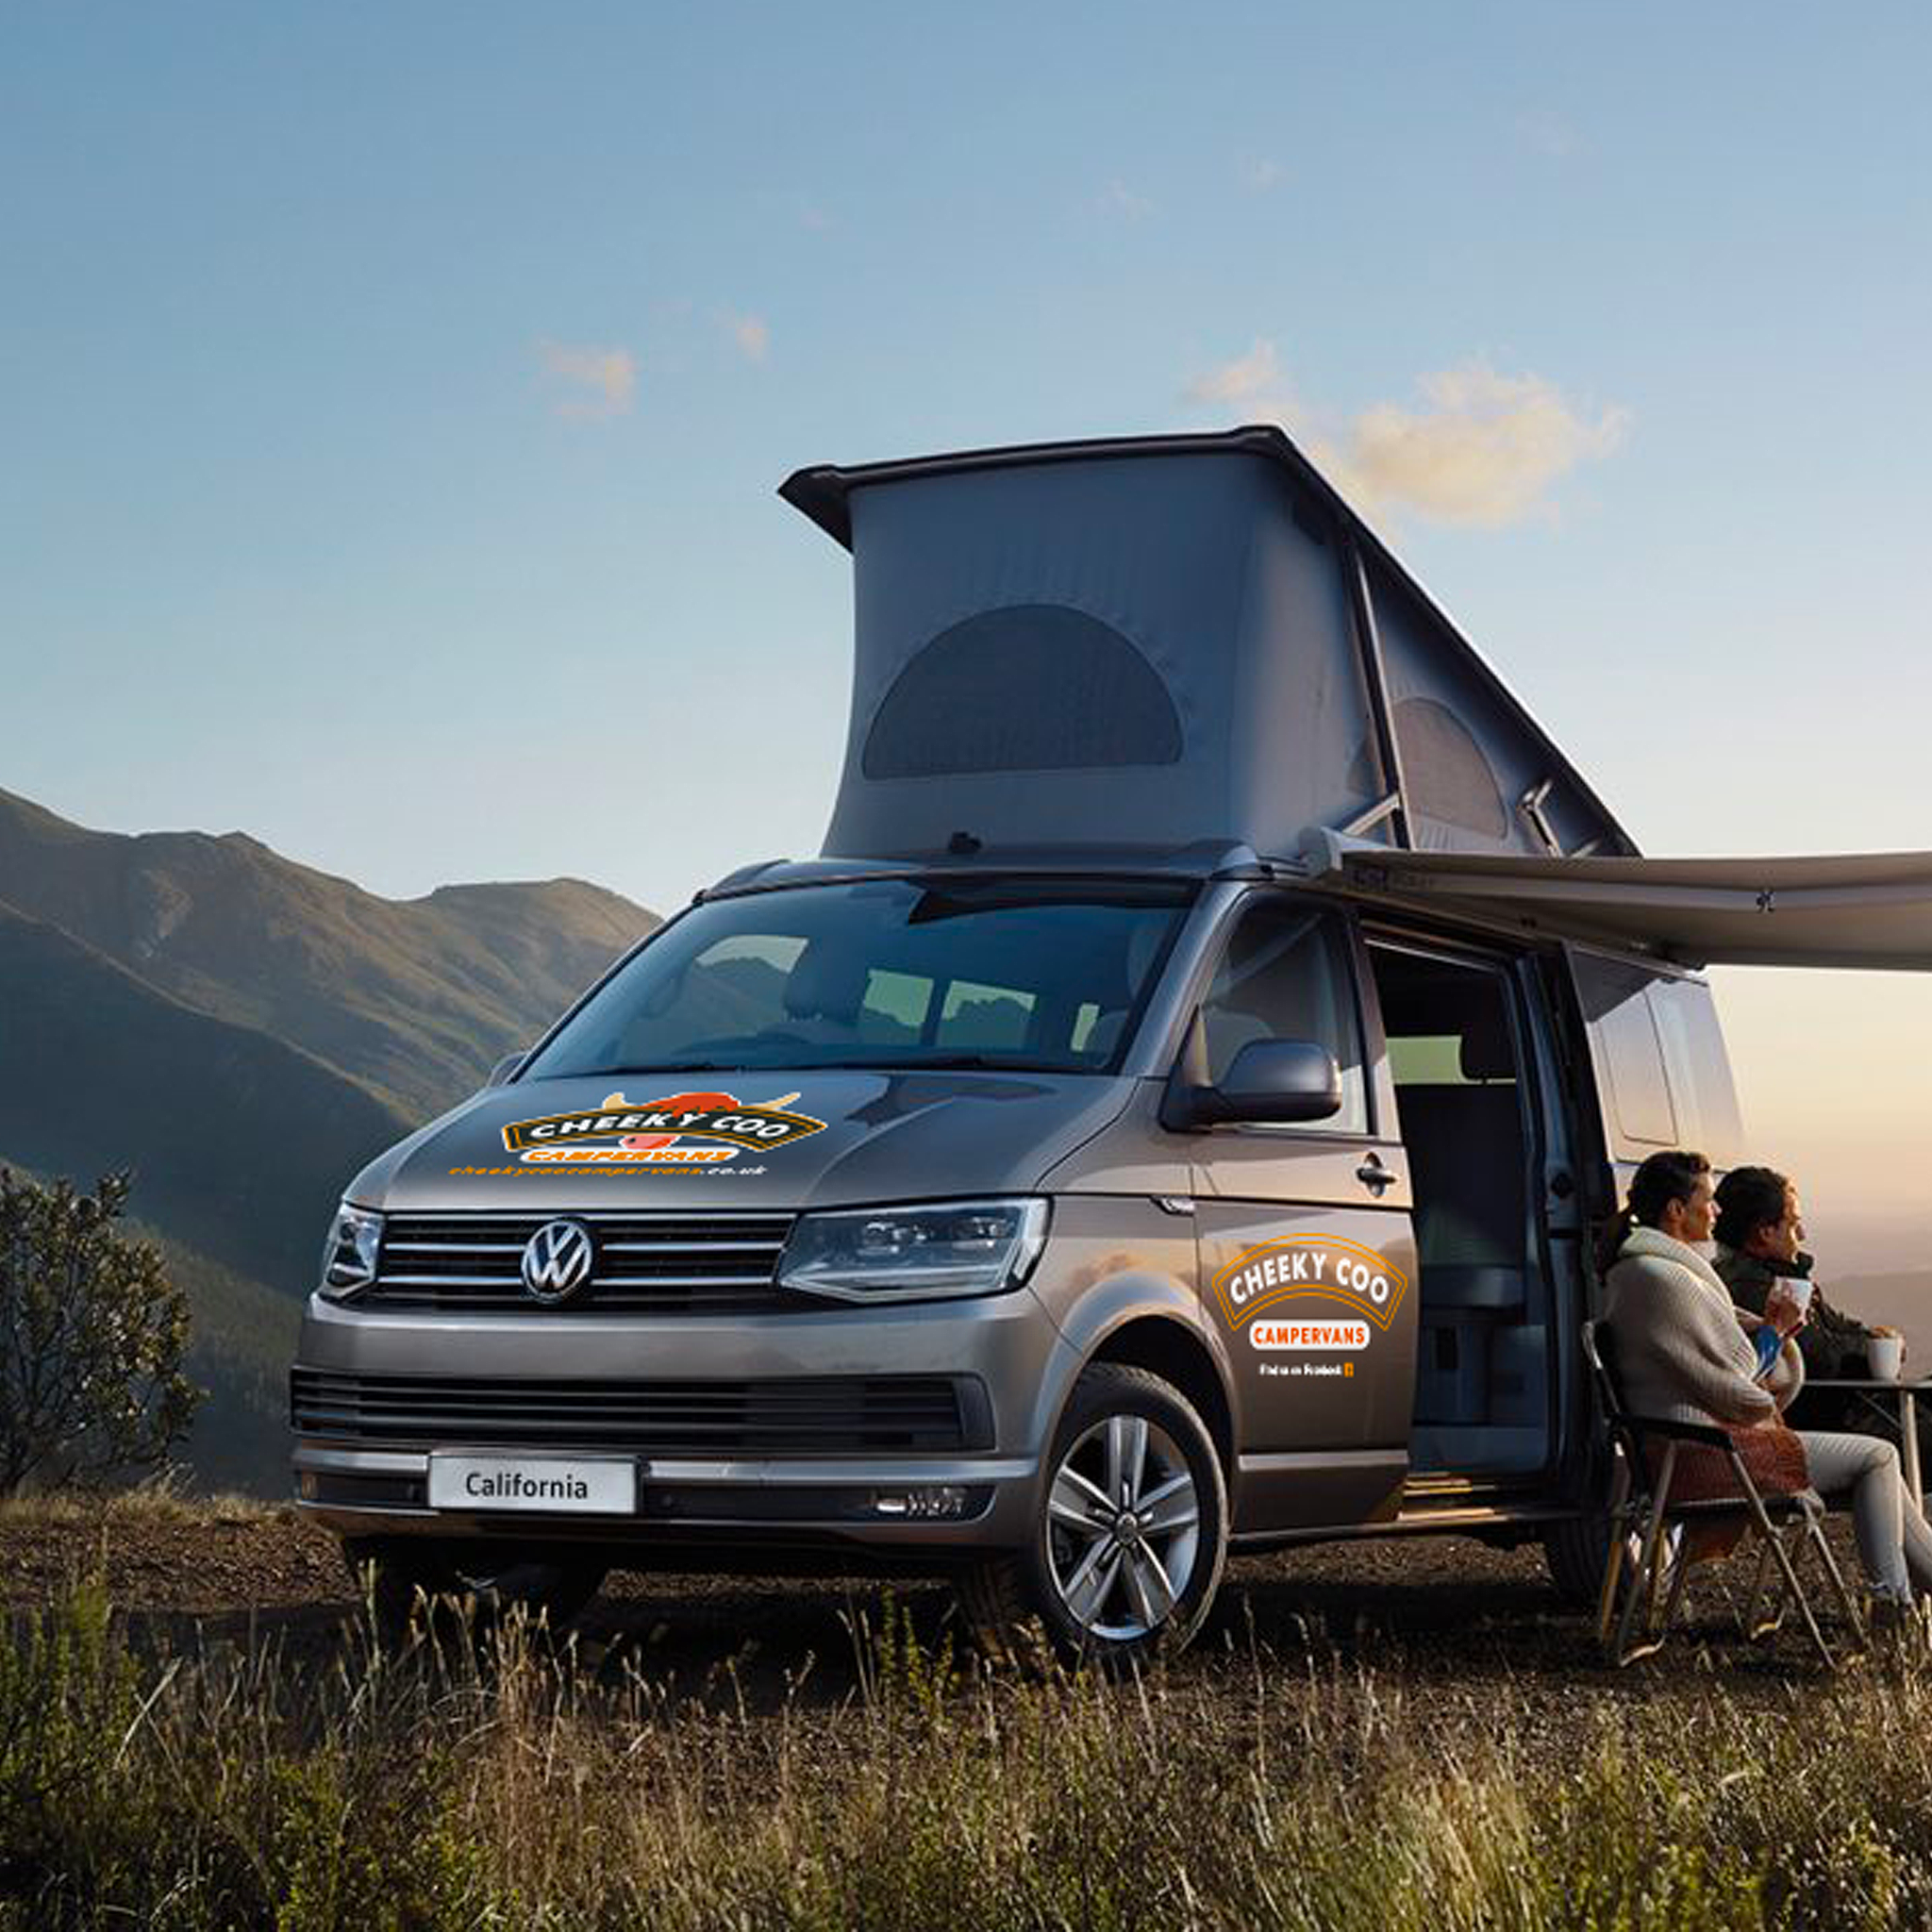 Cheeky Coo Campervans